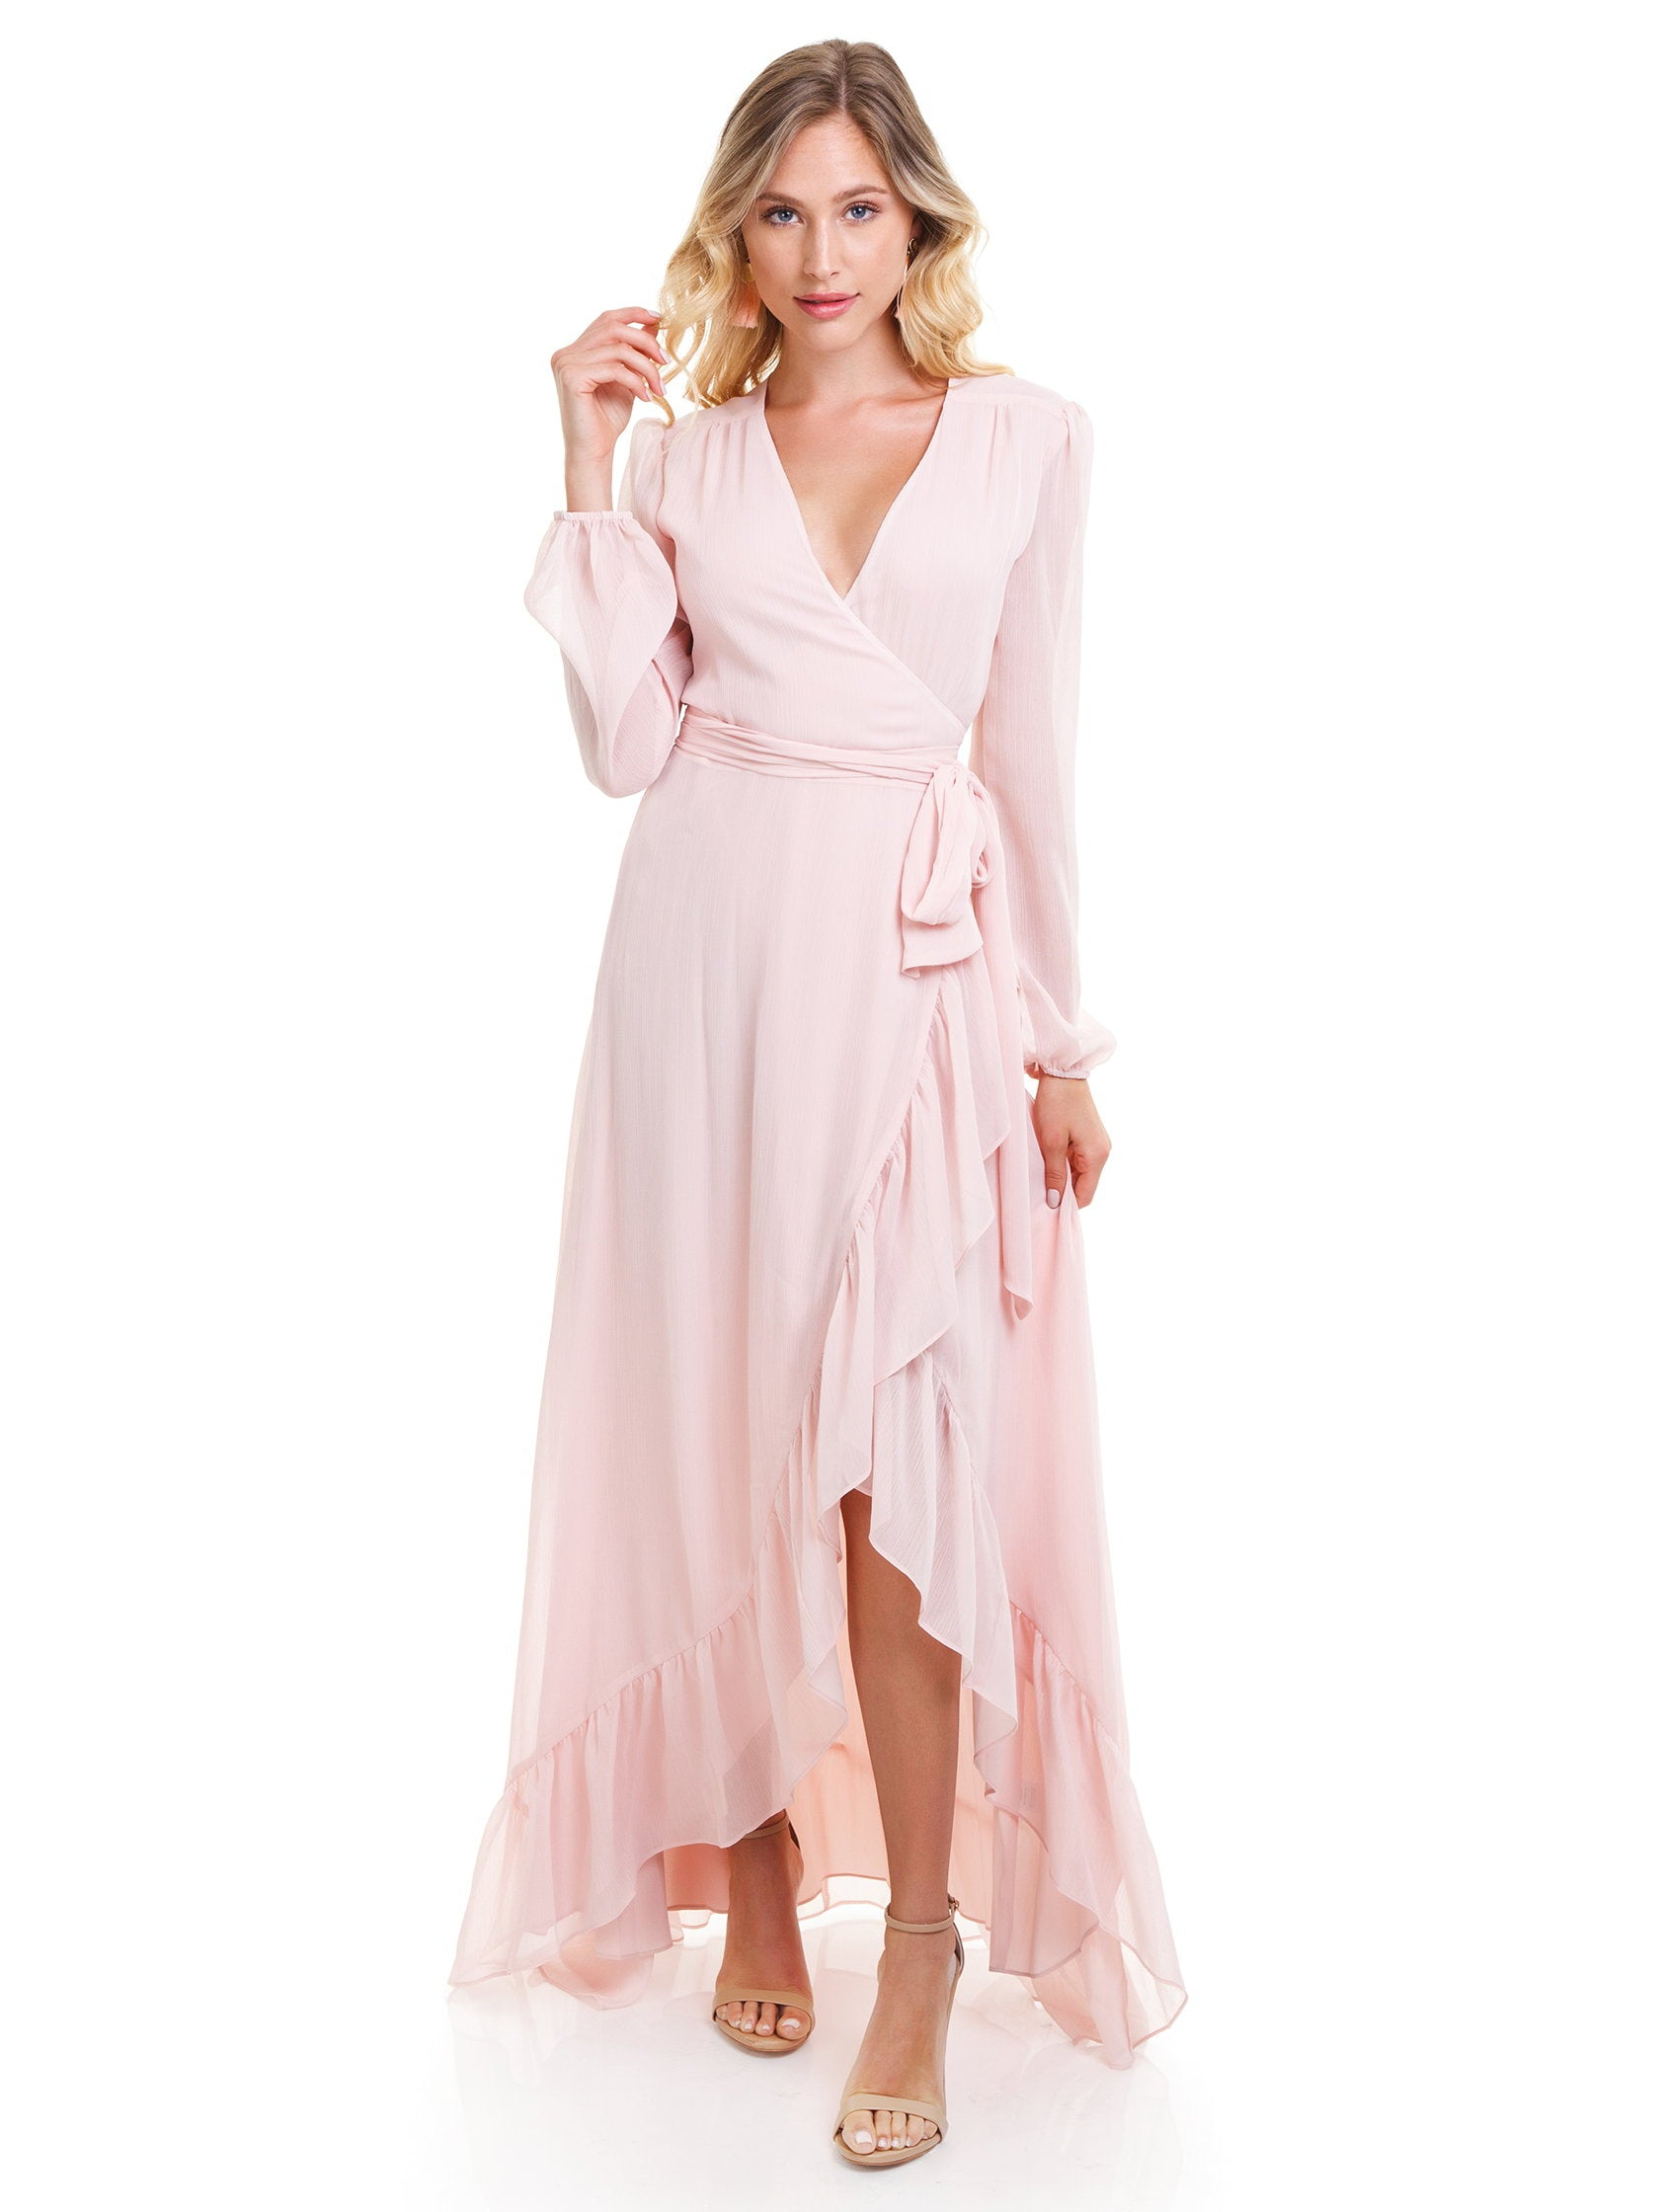 Women outfit in a dress rental from WAYF called Meryl Long Sleeve Wrap Maxi Dress